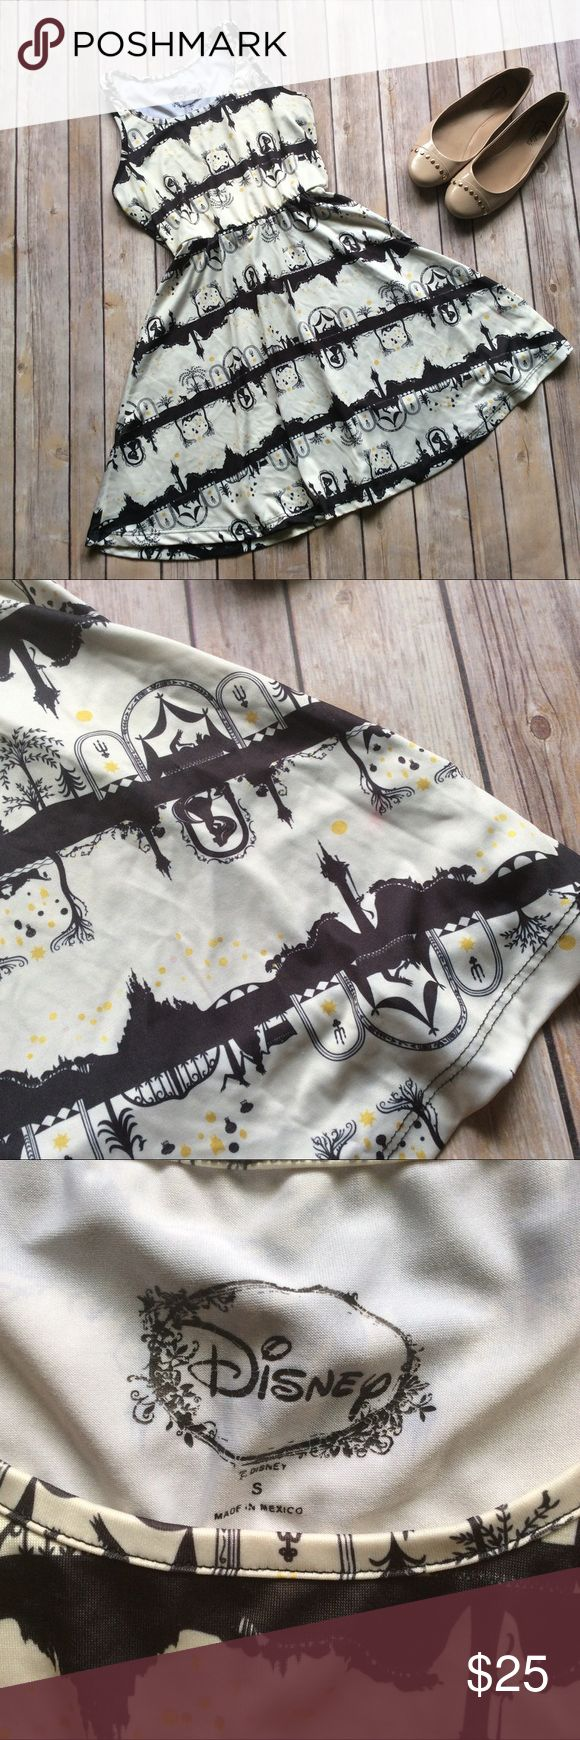 Disney Tangled Dress size Small Great condition, the fabric is so soft and comfortable. There is a very faint stain on the bottom but it is hardly noticeable when wearing. Disney Dresses